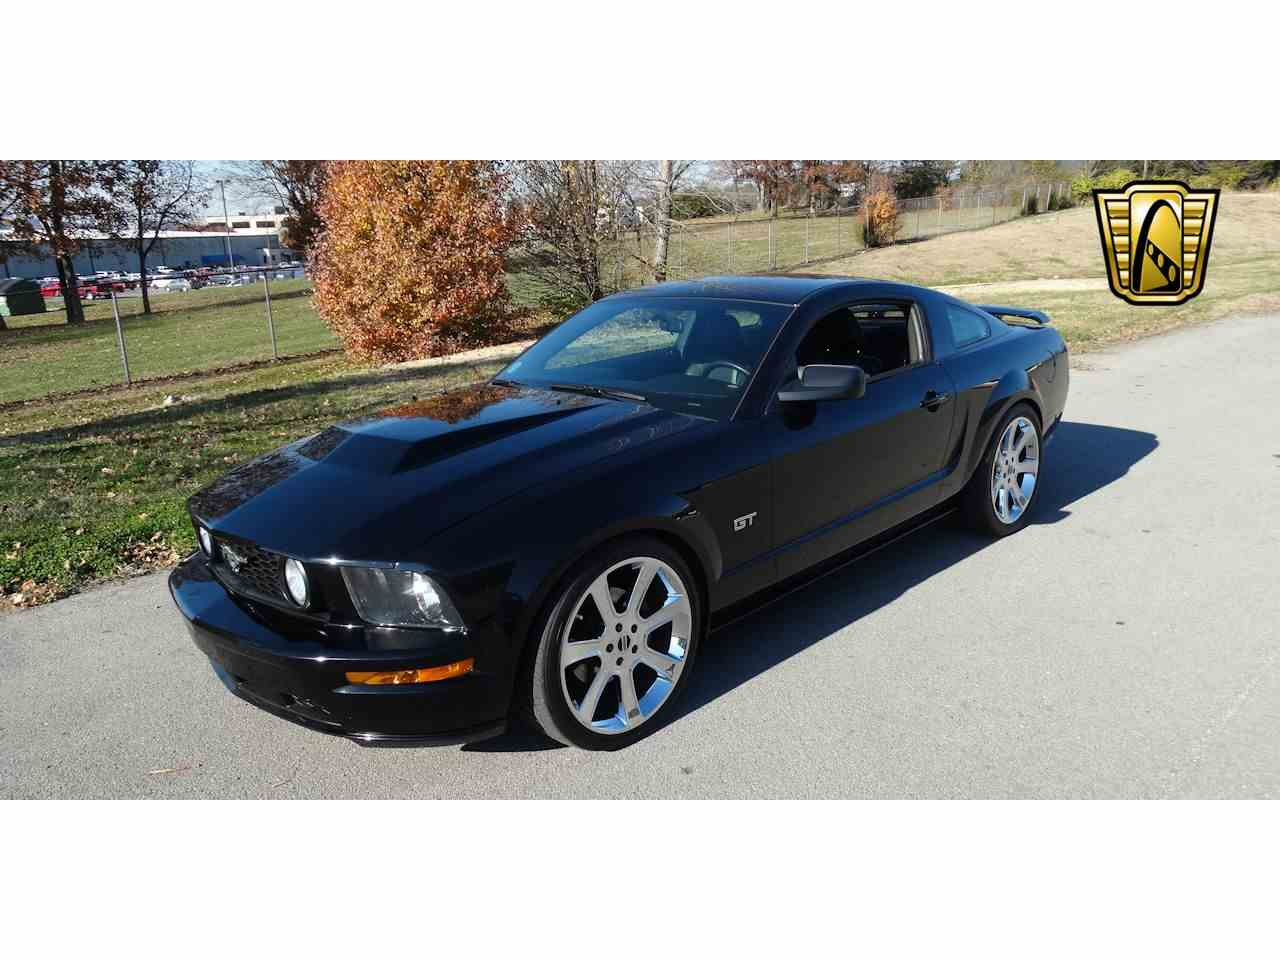 Large Picture of 2006 Mustang located in Tennessee - $15,595.00 Offered by Gateway Classic Cars - Nashville - MFDI